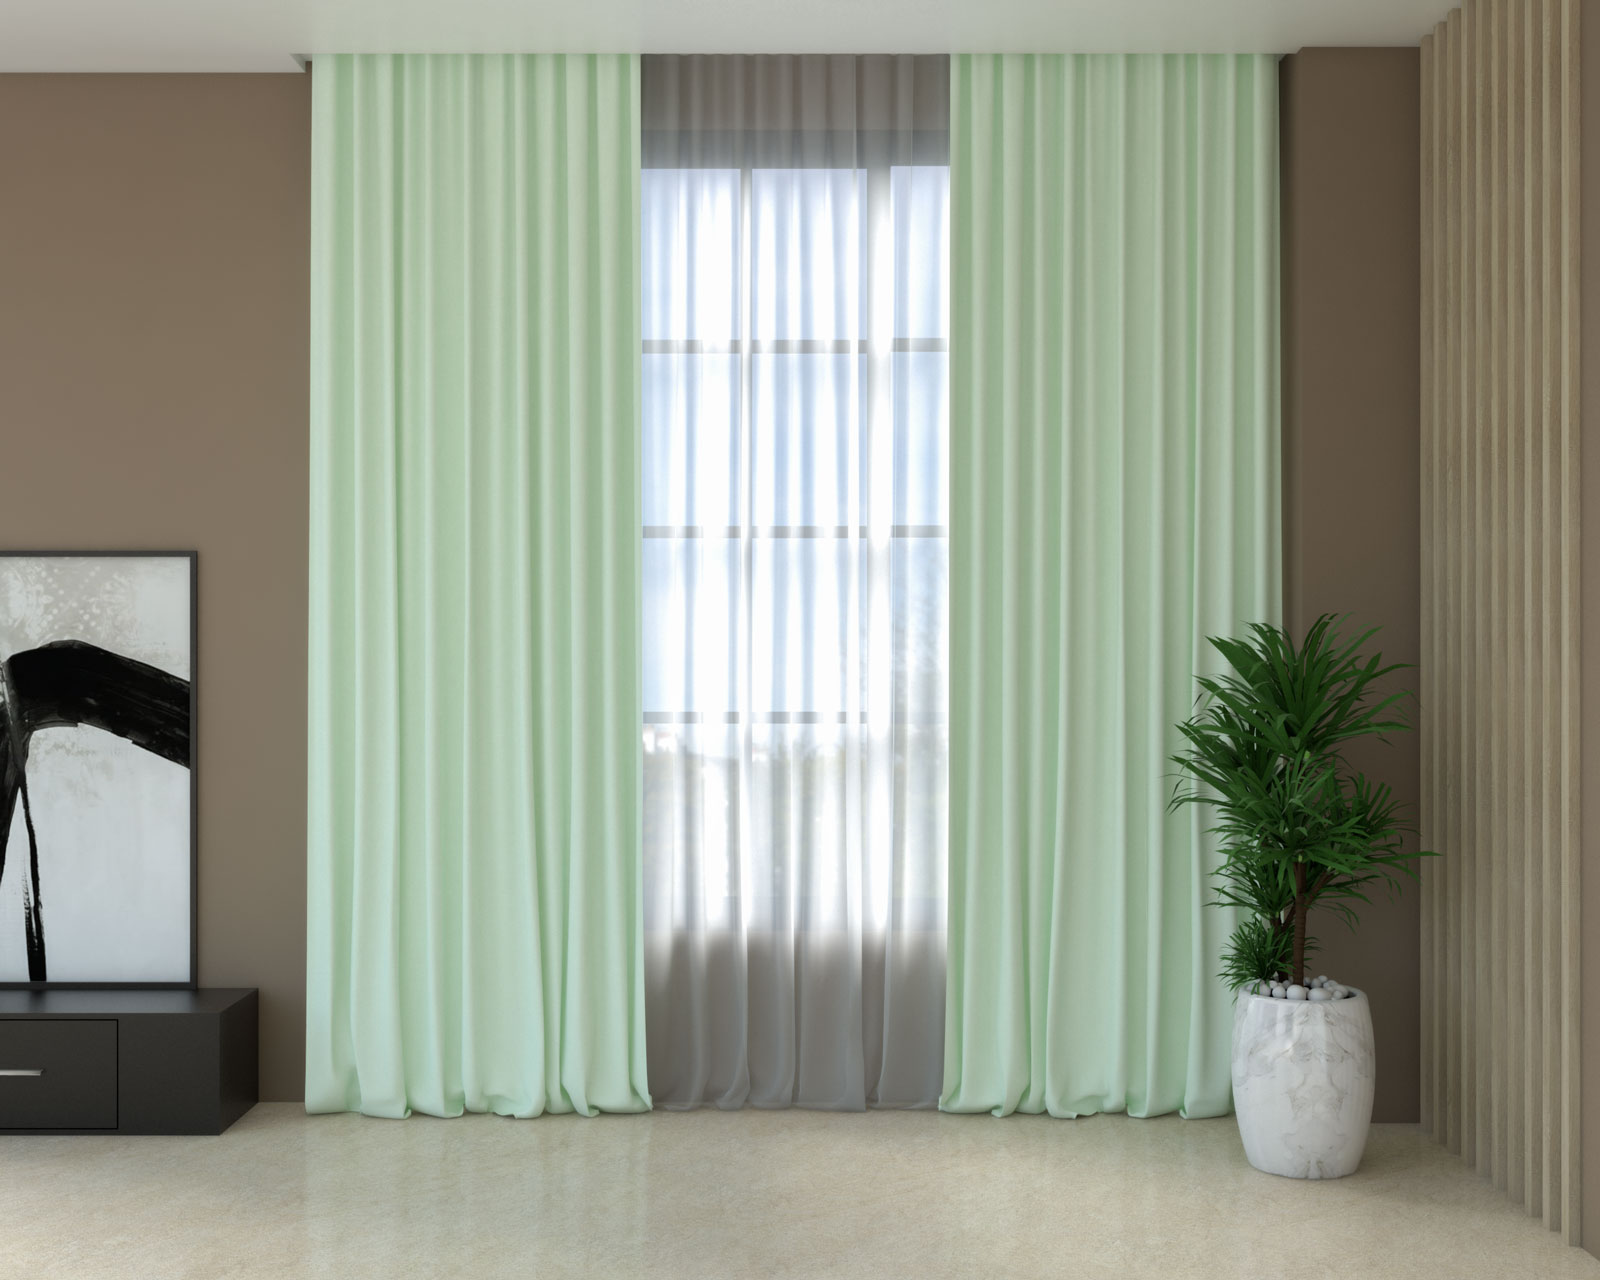 Pistachio green curtains with brown walls